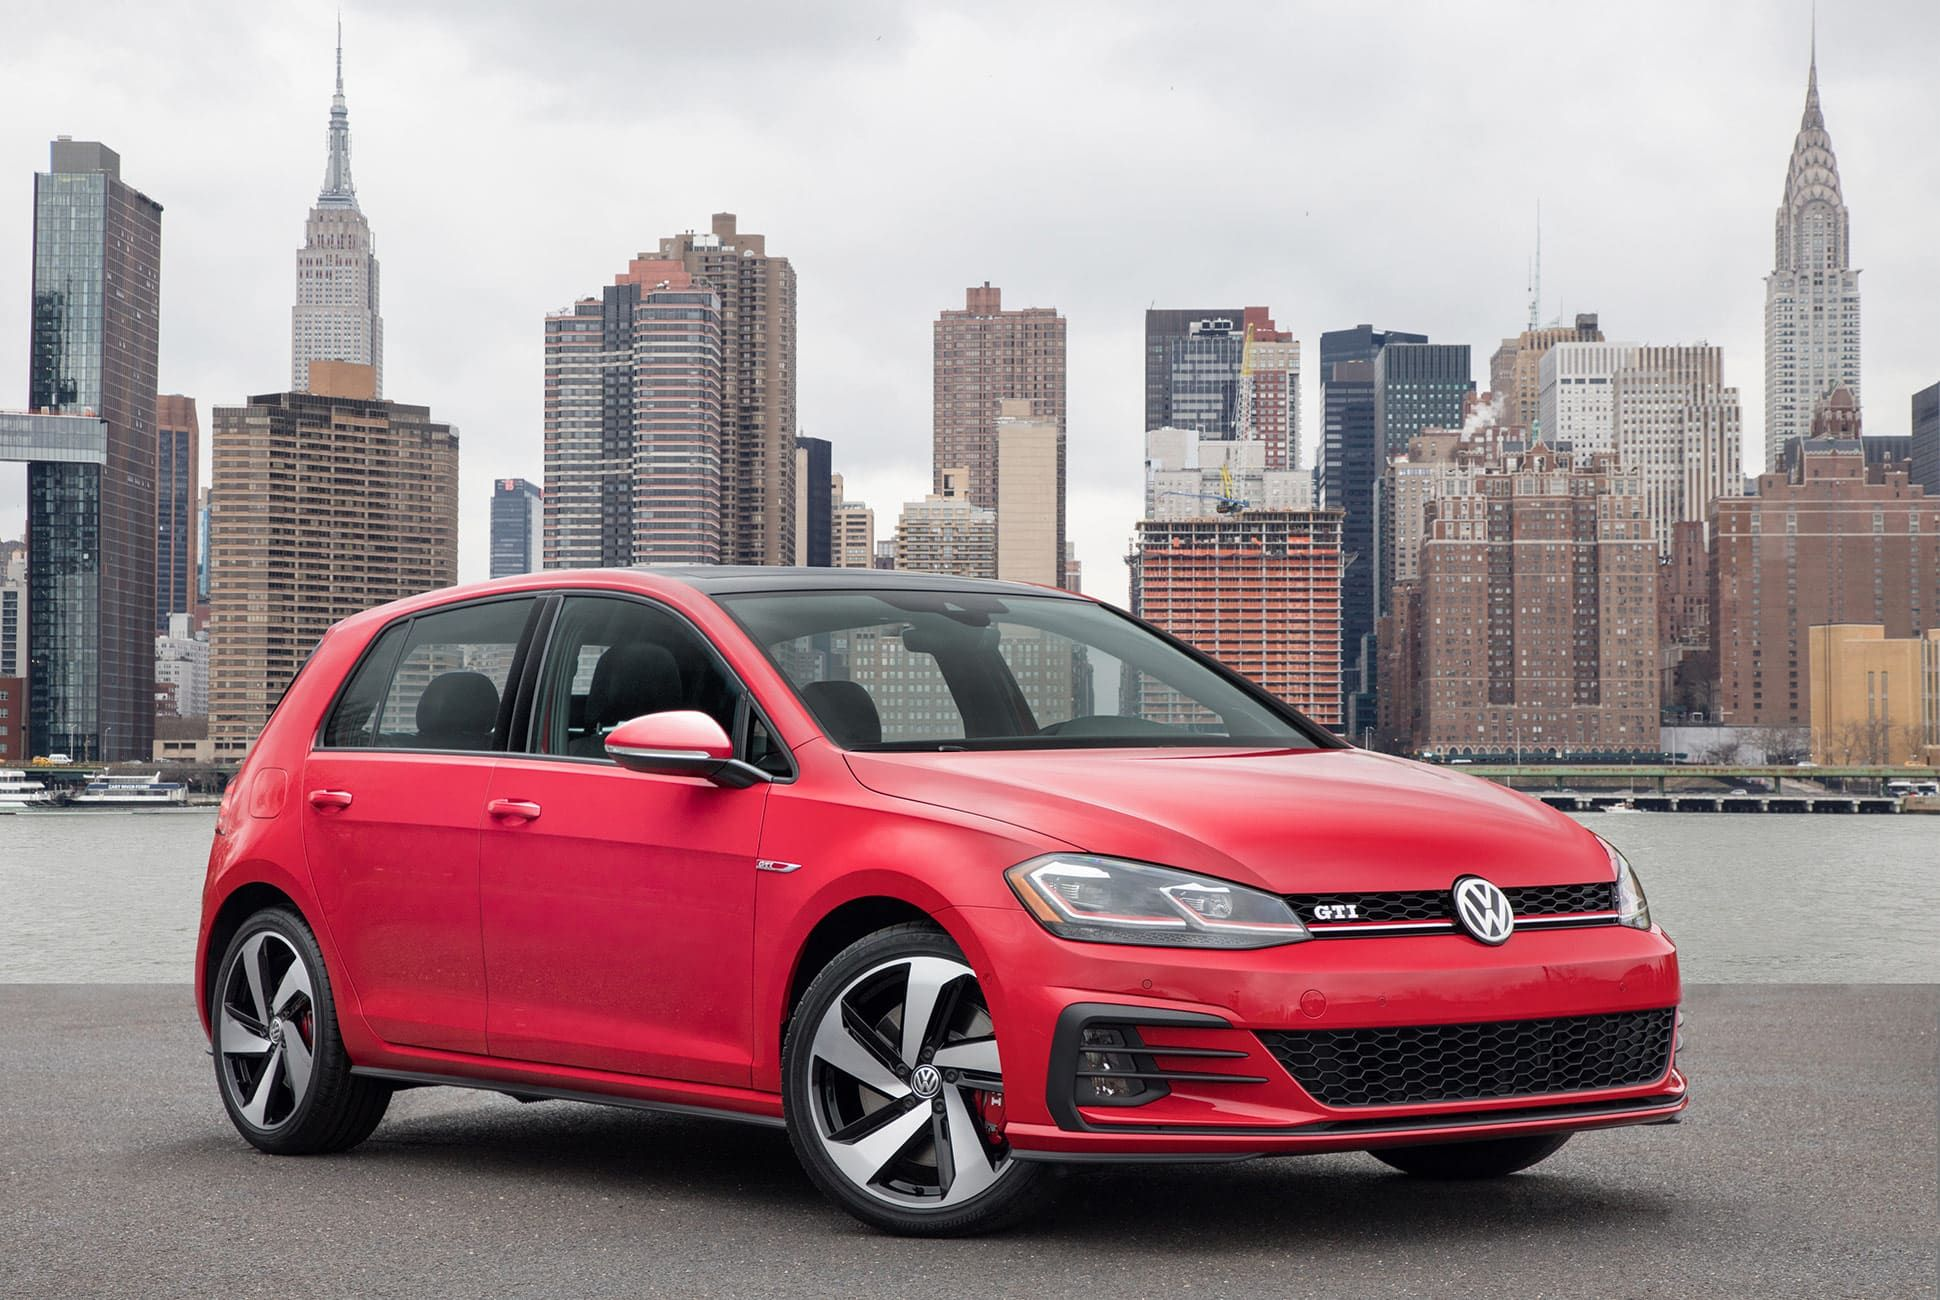 The 2016 2019 Vw Golf Gti May Be